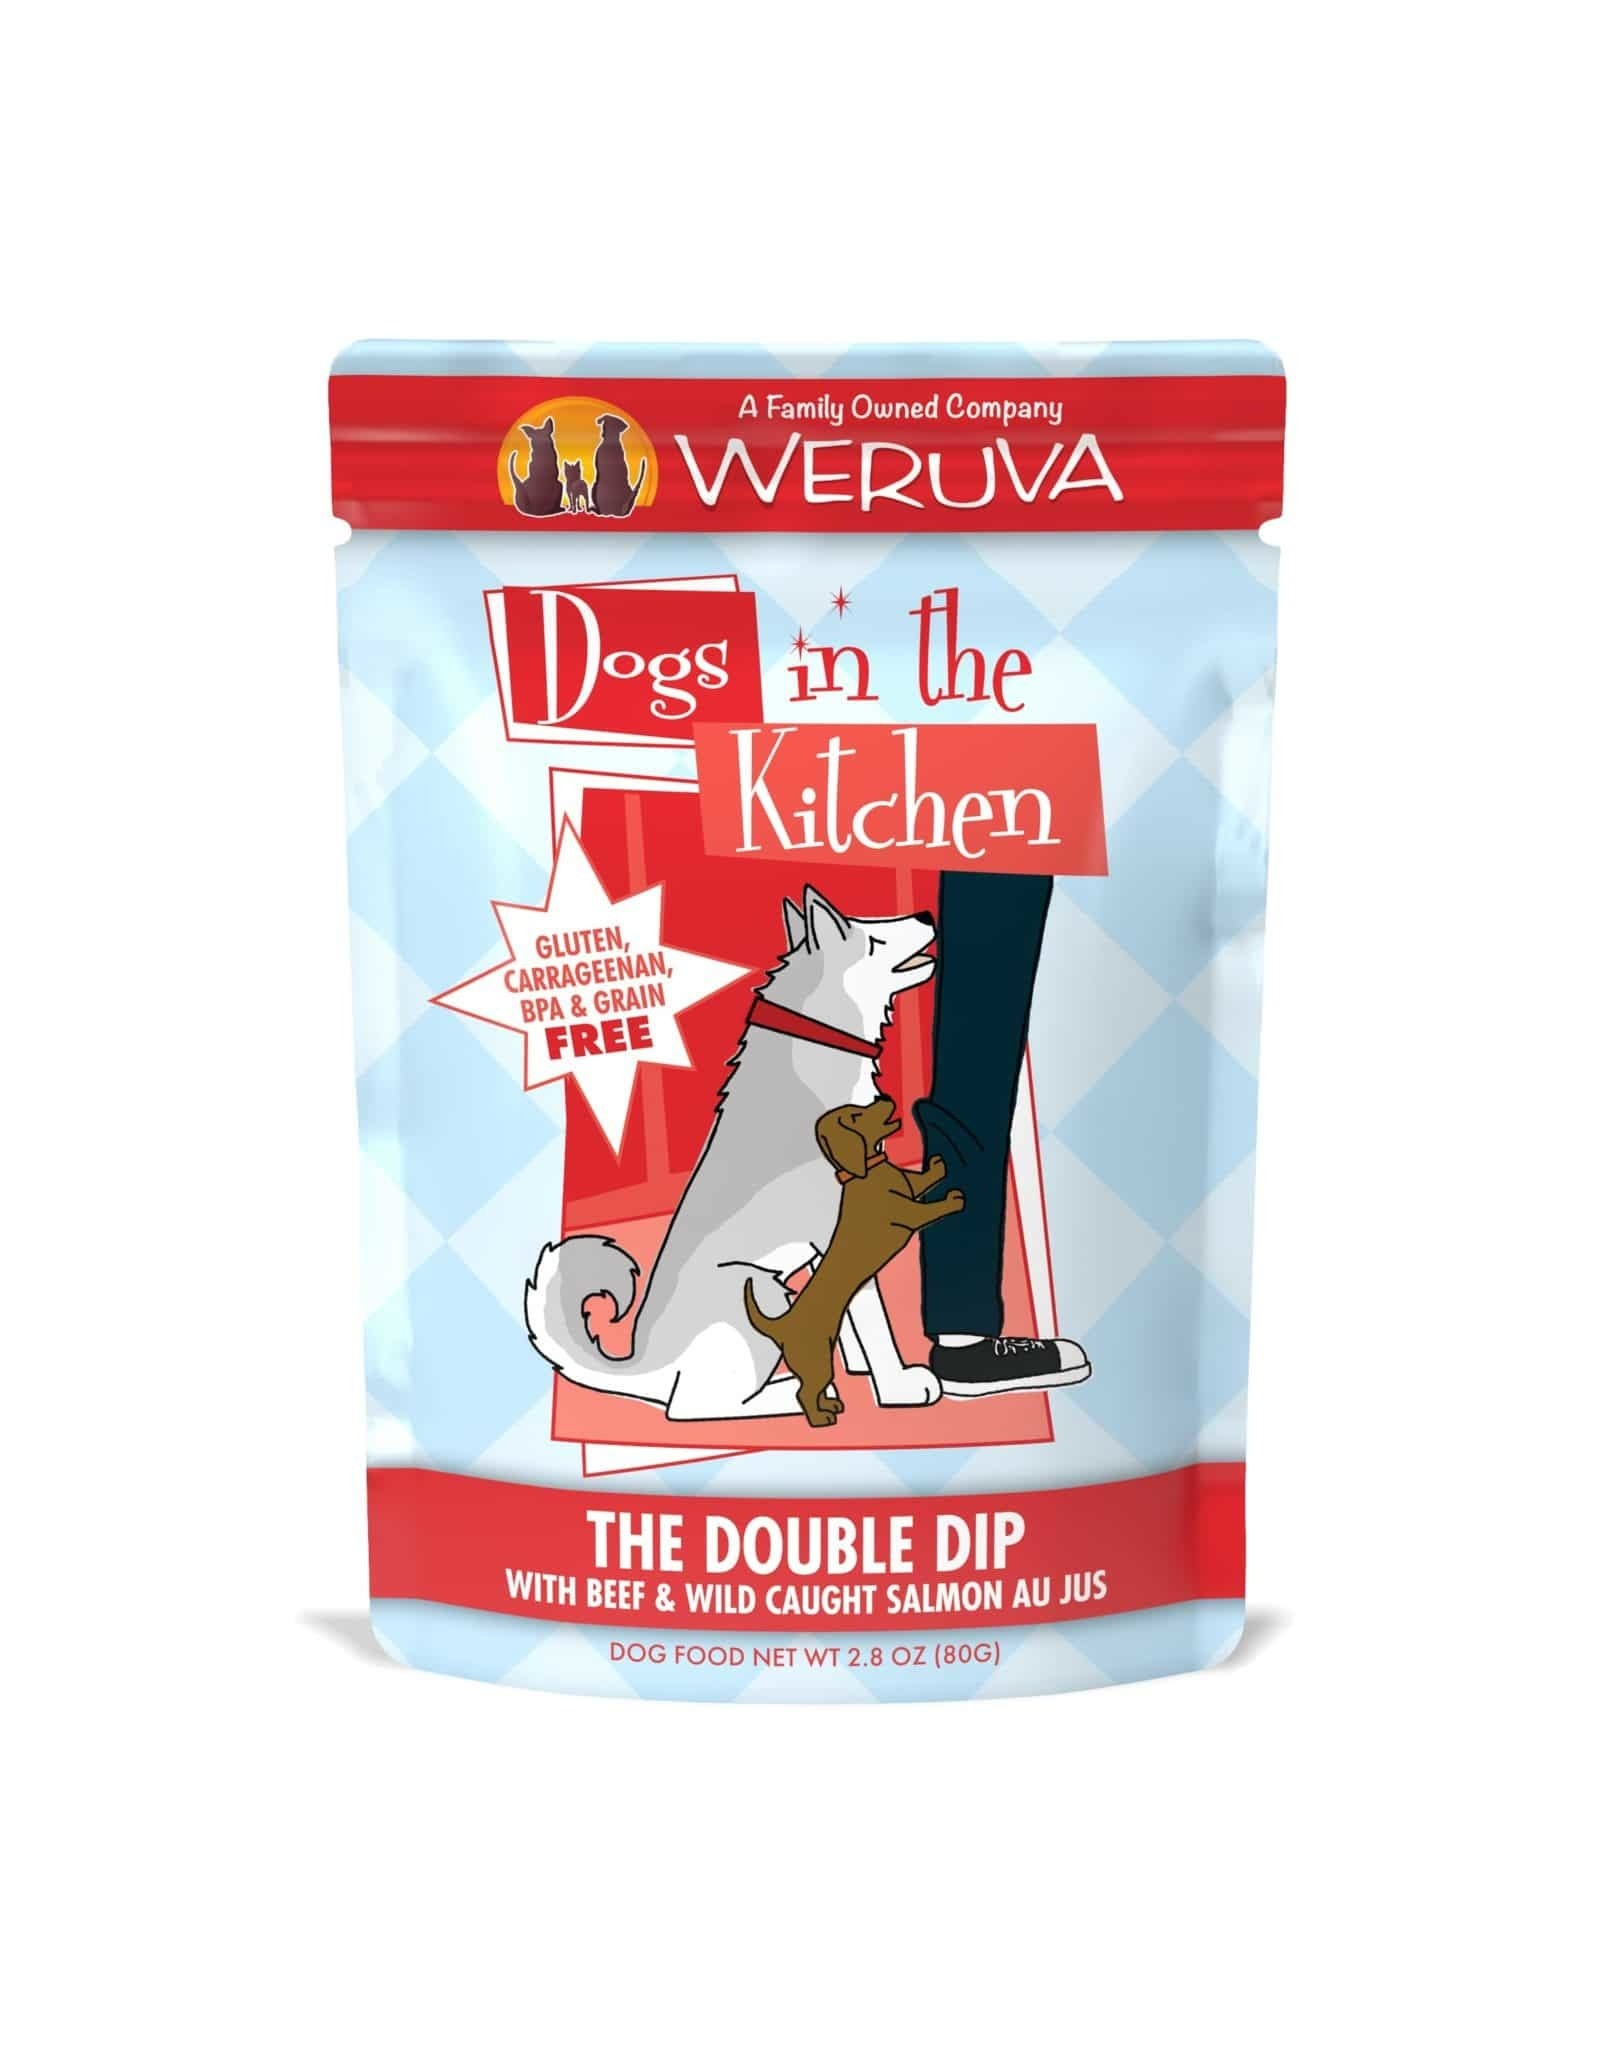 Weruva The Double Dip - with Beef & Wild-Caught Salmon Au Jus